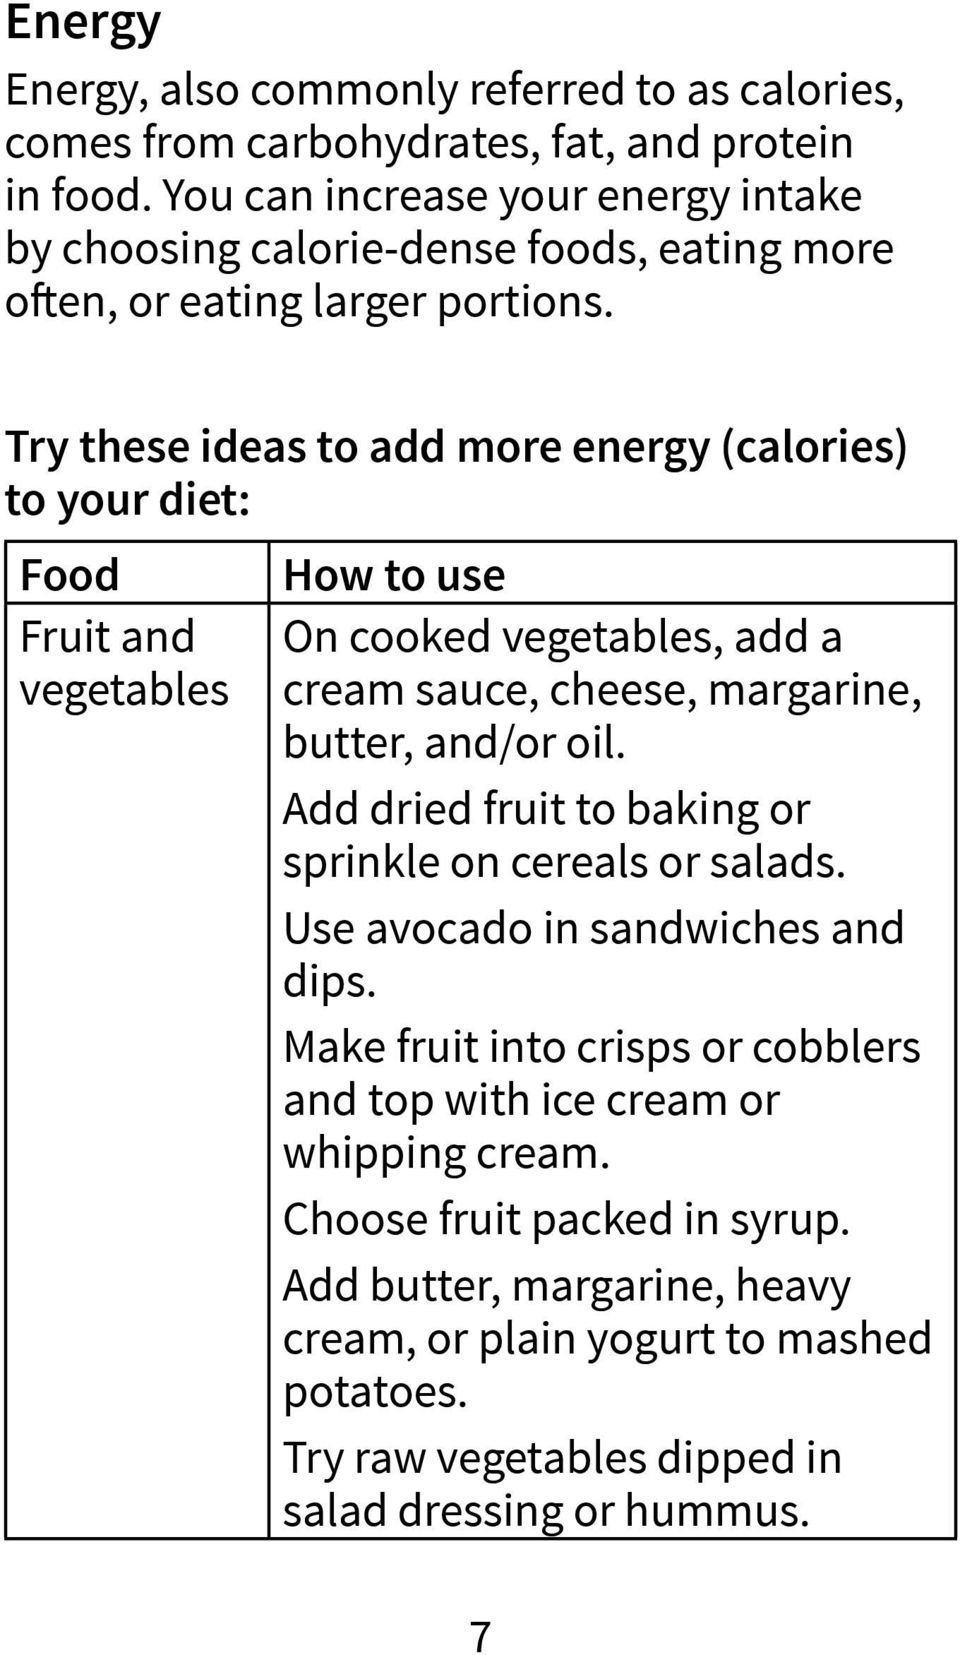 Try these ideas to add more energy (calories) to your diet: Food Fruit and vegetables How to use On cooked vegetables, add a cream sauce, cheese, margarine, butter, and/or oil.